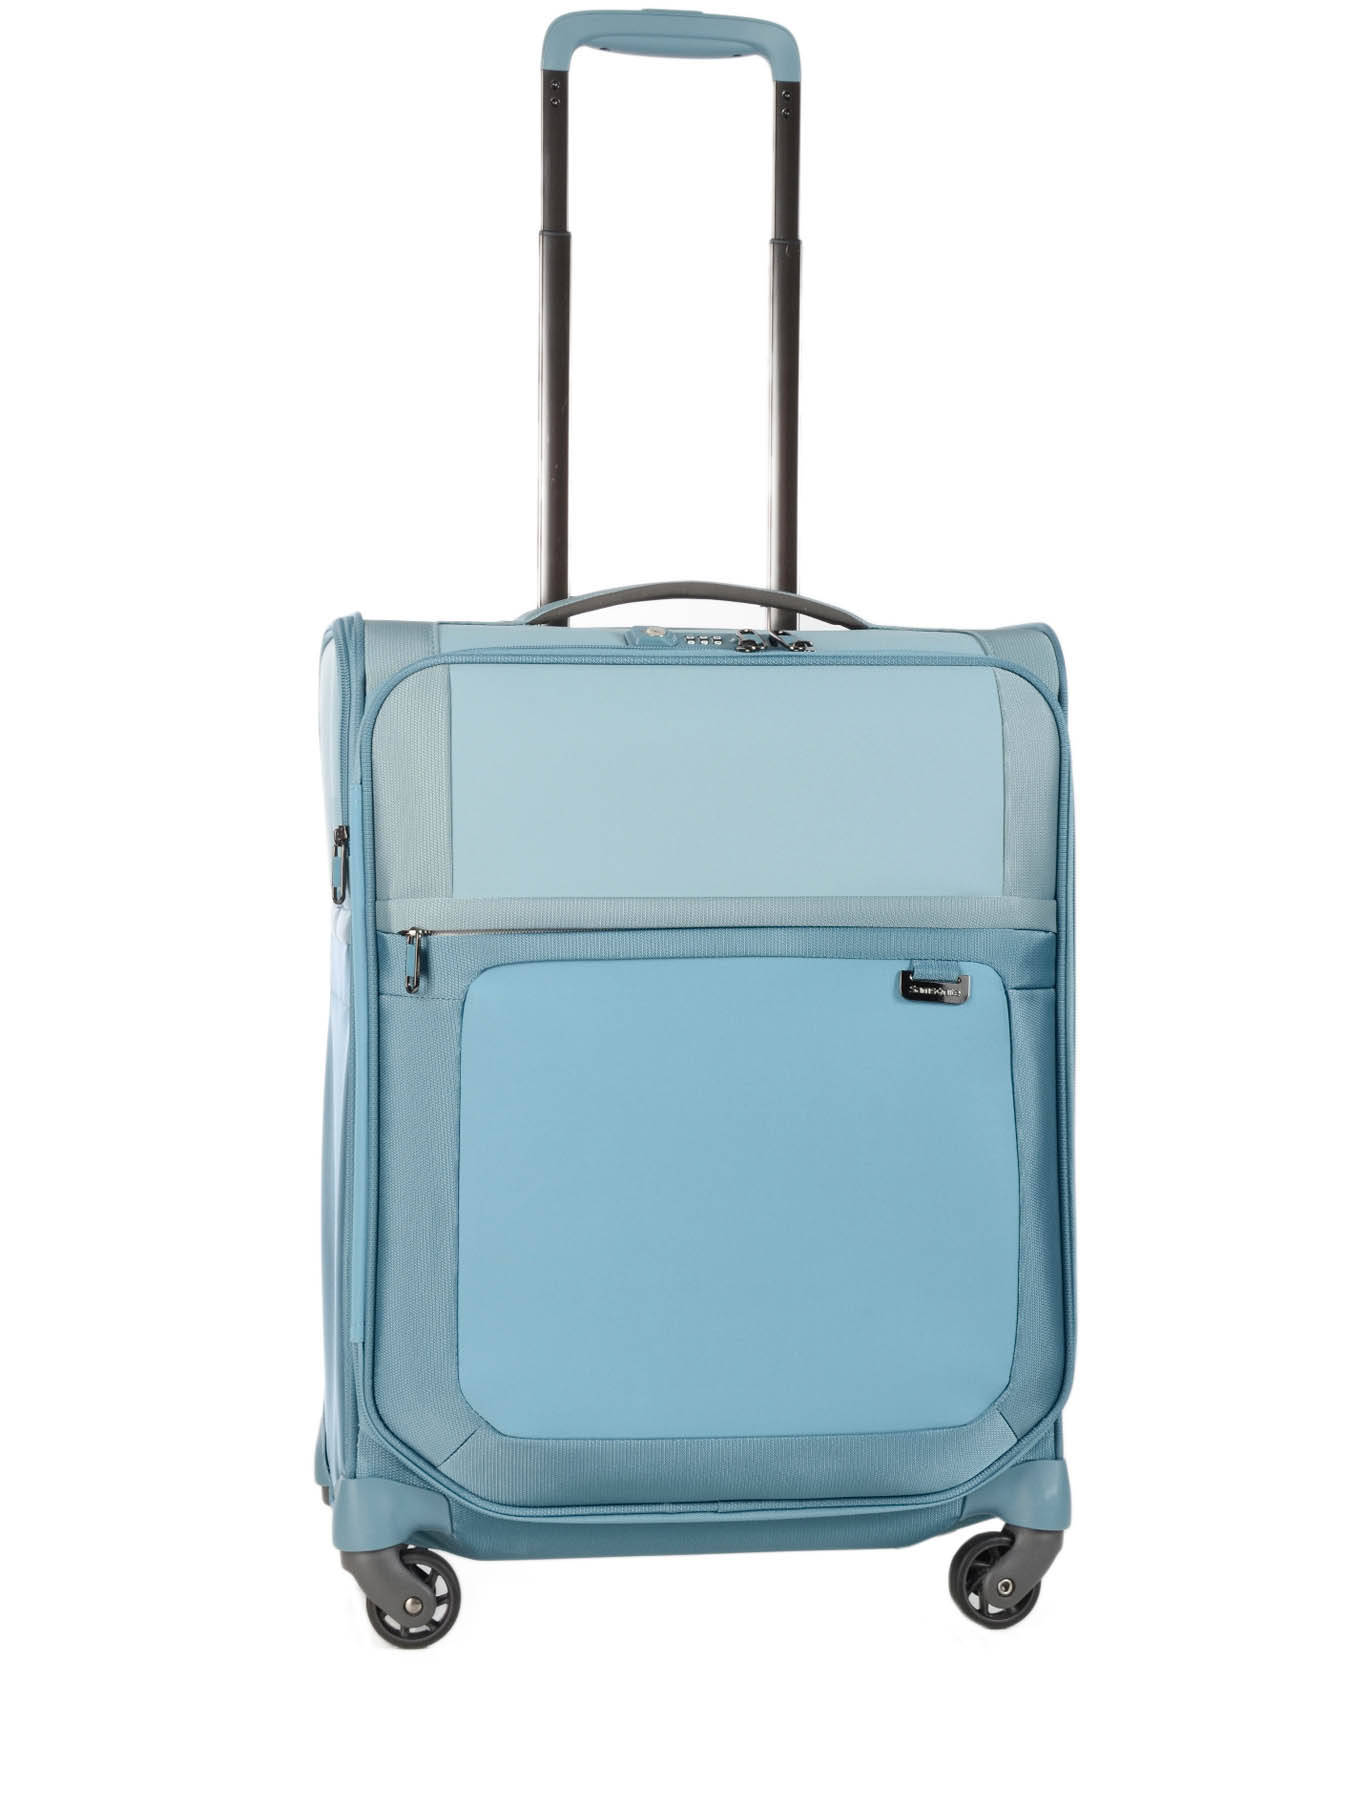 valise cabine samsonite uplite turquoise en vente au meilleur prix. Black Bedroom Furniture Sets. Home Design Ideas